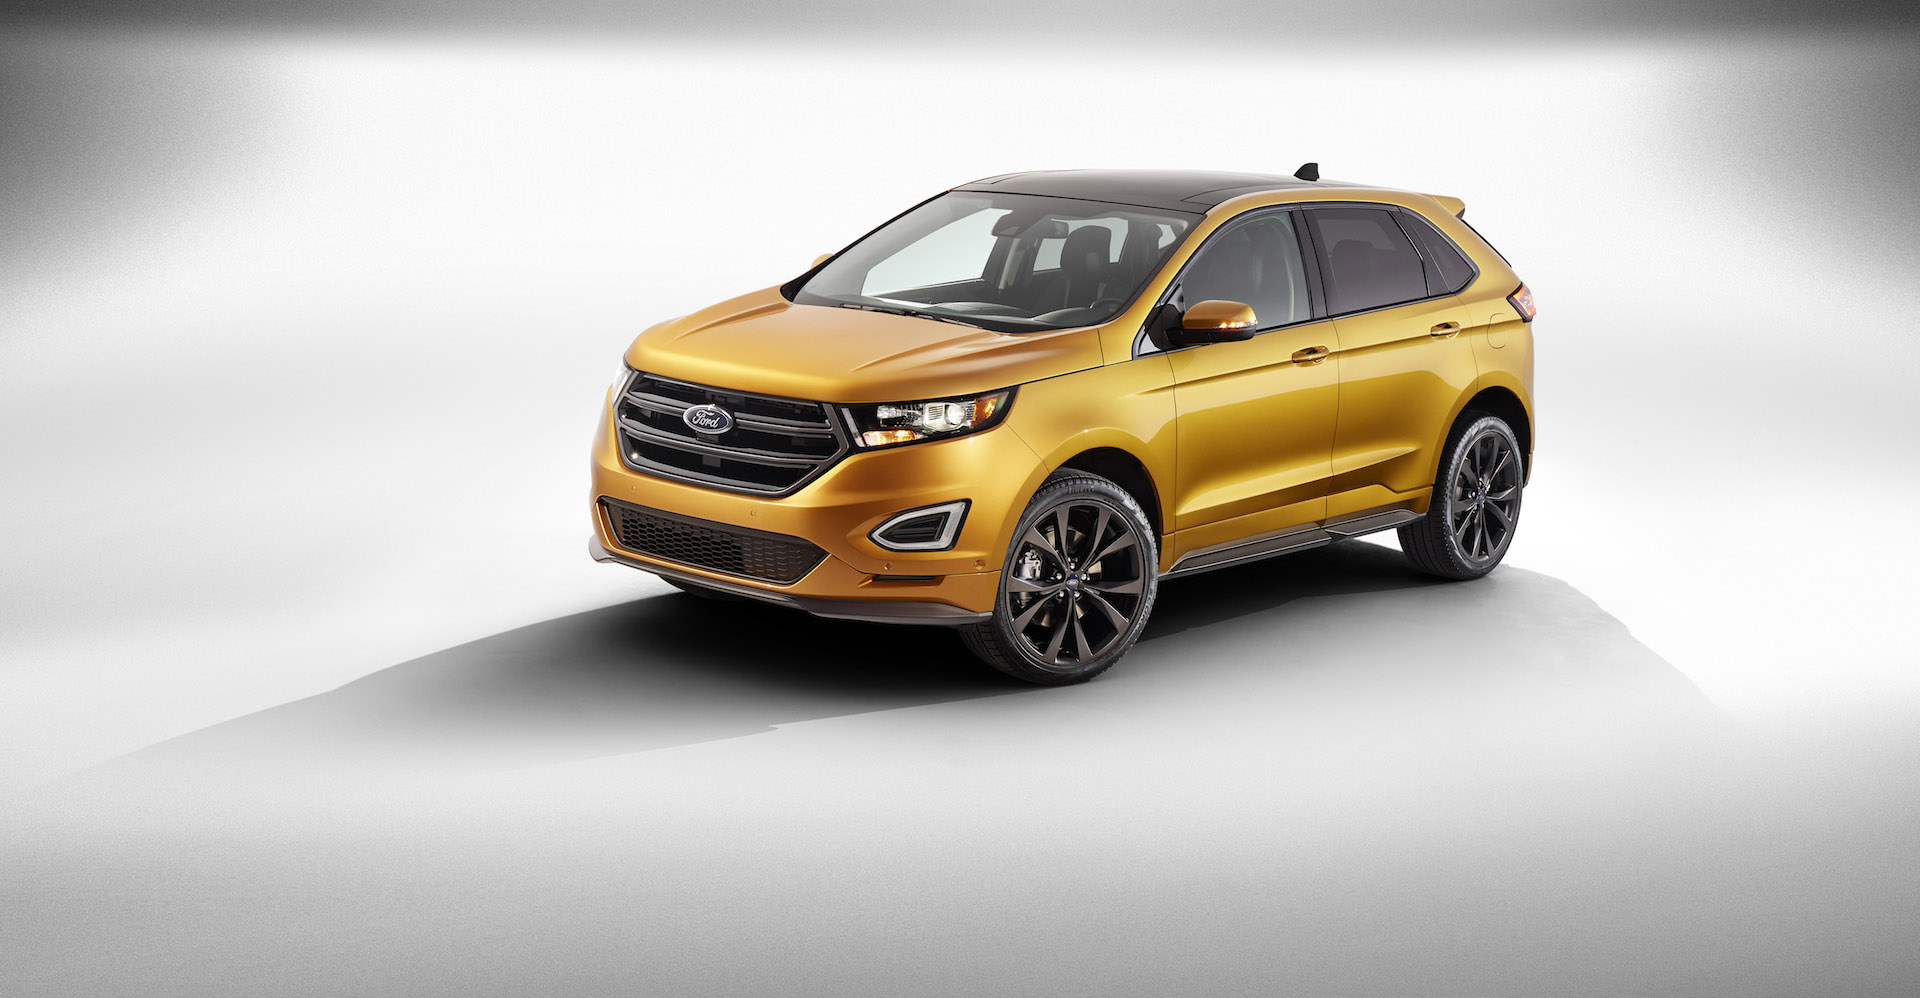 2015 Ford Edge Sport Rated At 315 HP, Priced From $38,925